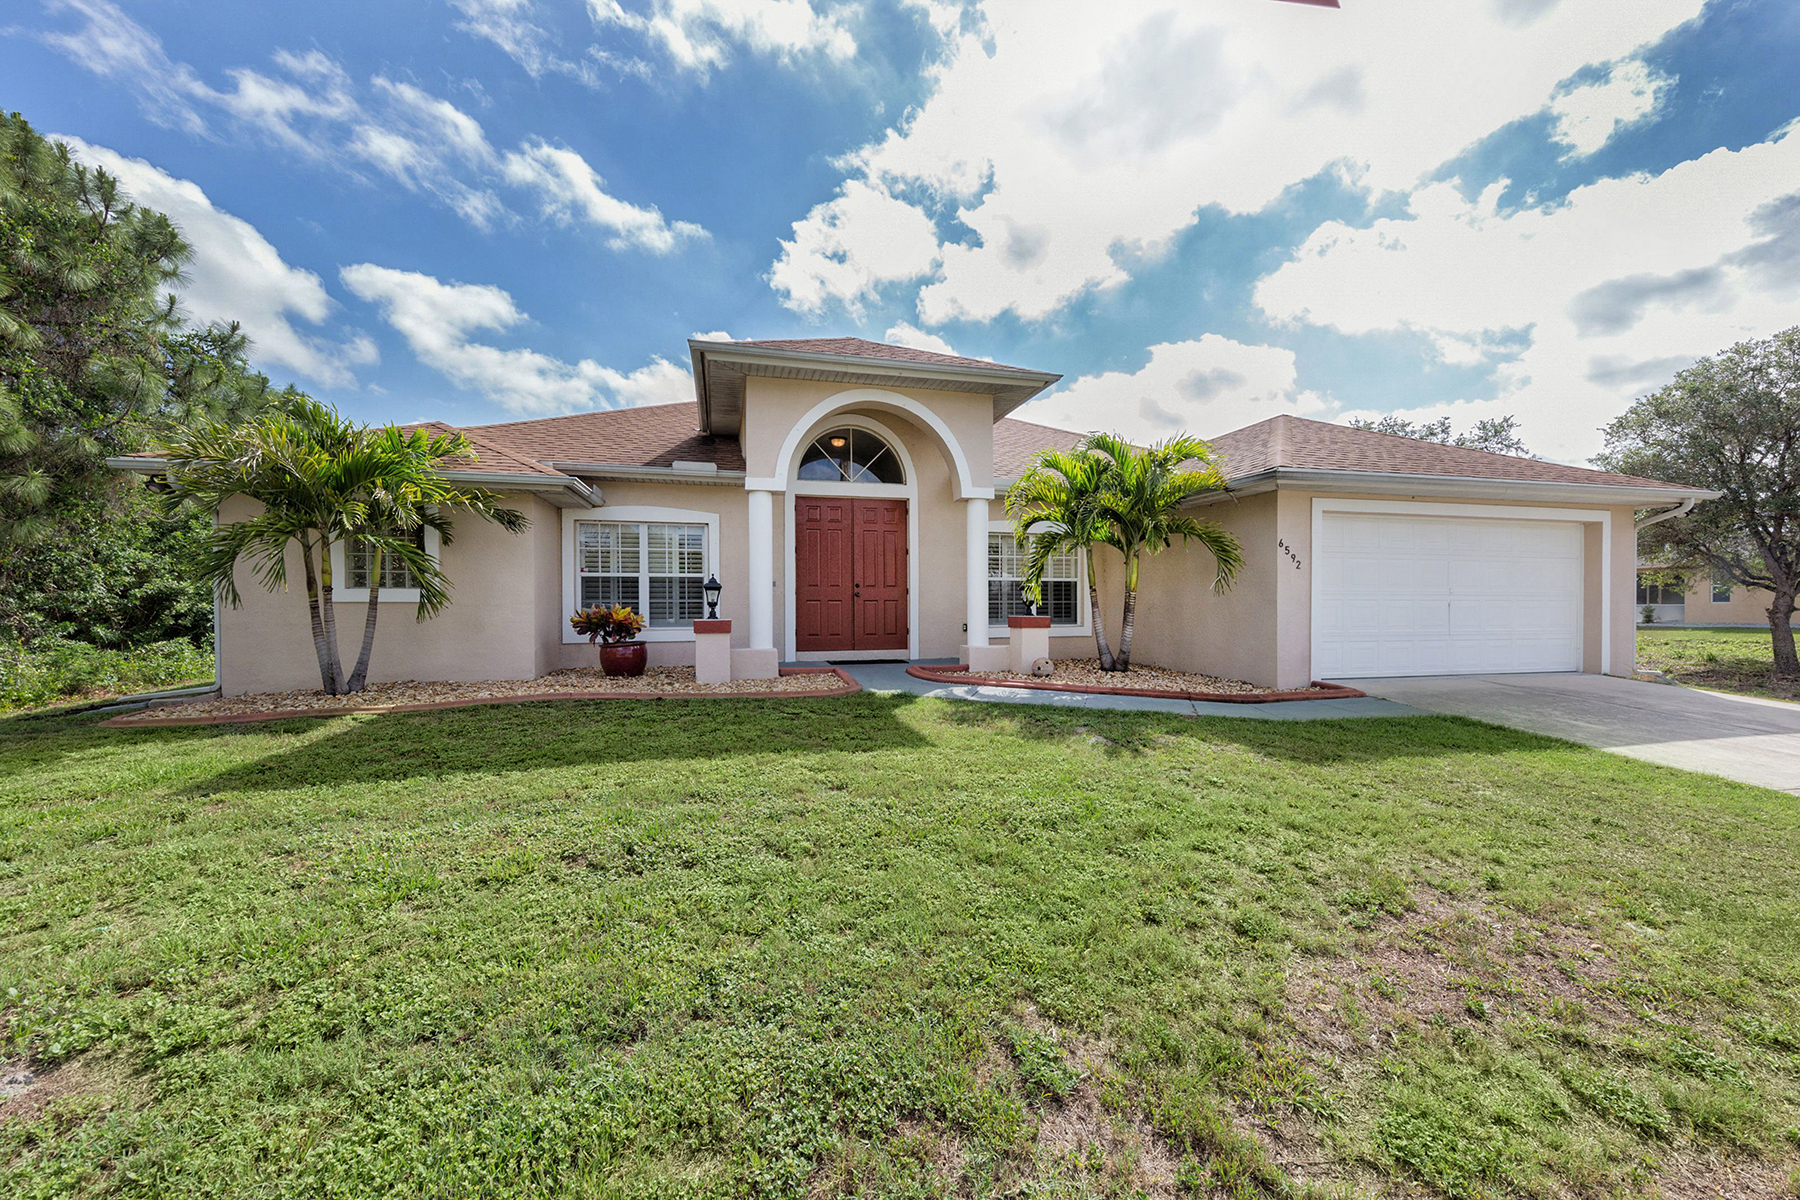 Single Family Home for Sale at NORTH PORT 6592 Glacier Ave North Port, Florida 34291 United States